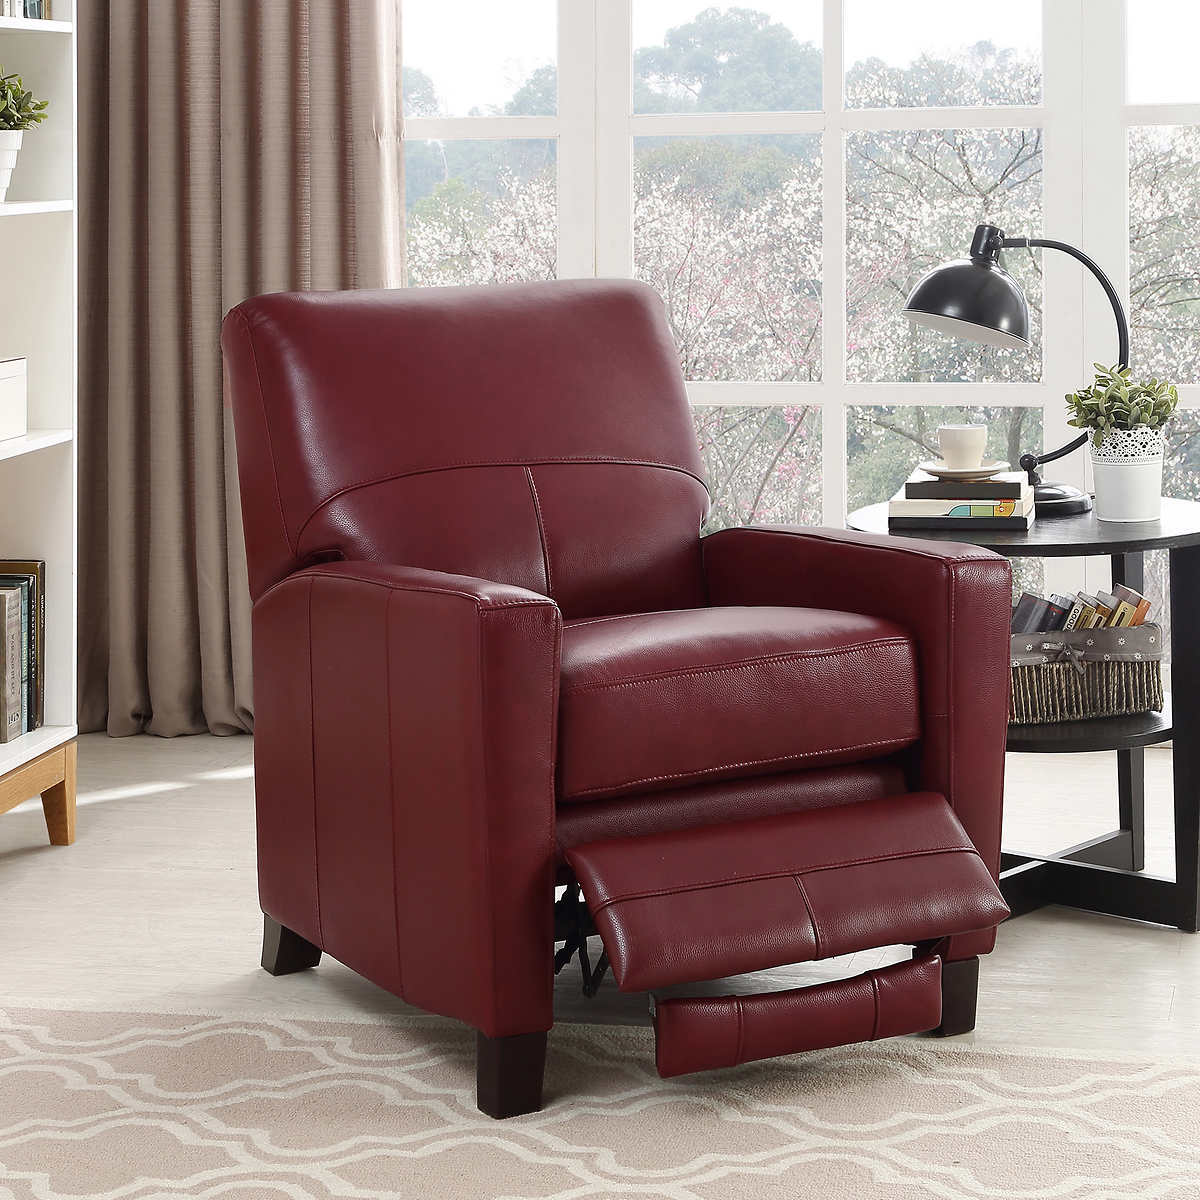 medium denver zoom village grey napoli furniture chair editions w recliner armchair natuzzi h leather power